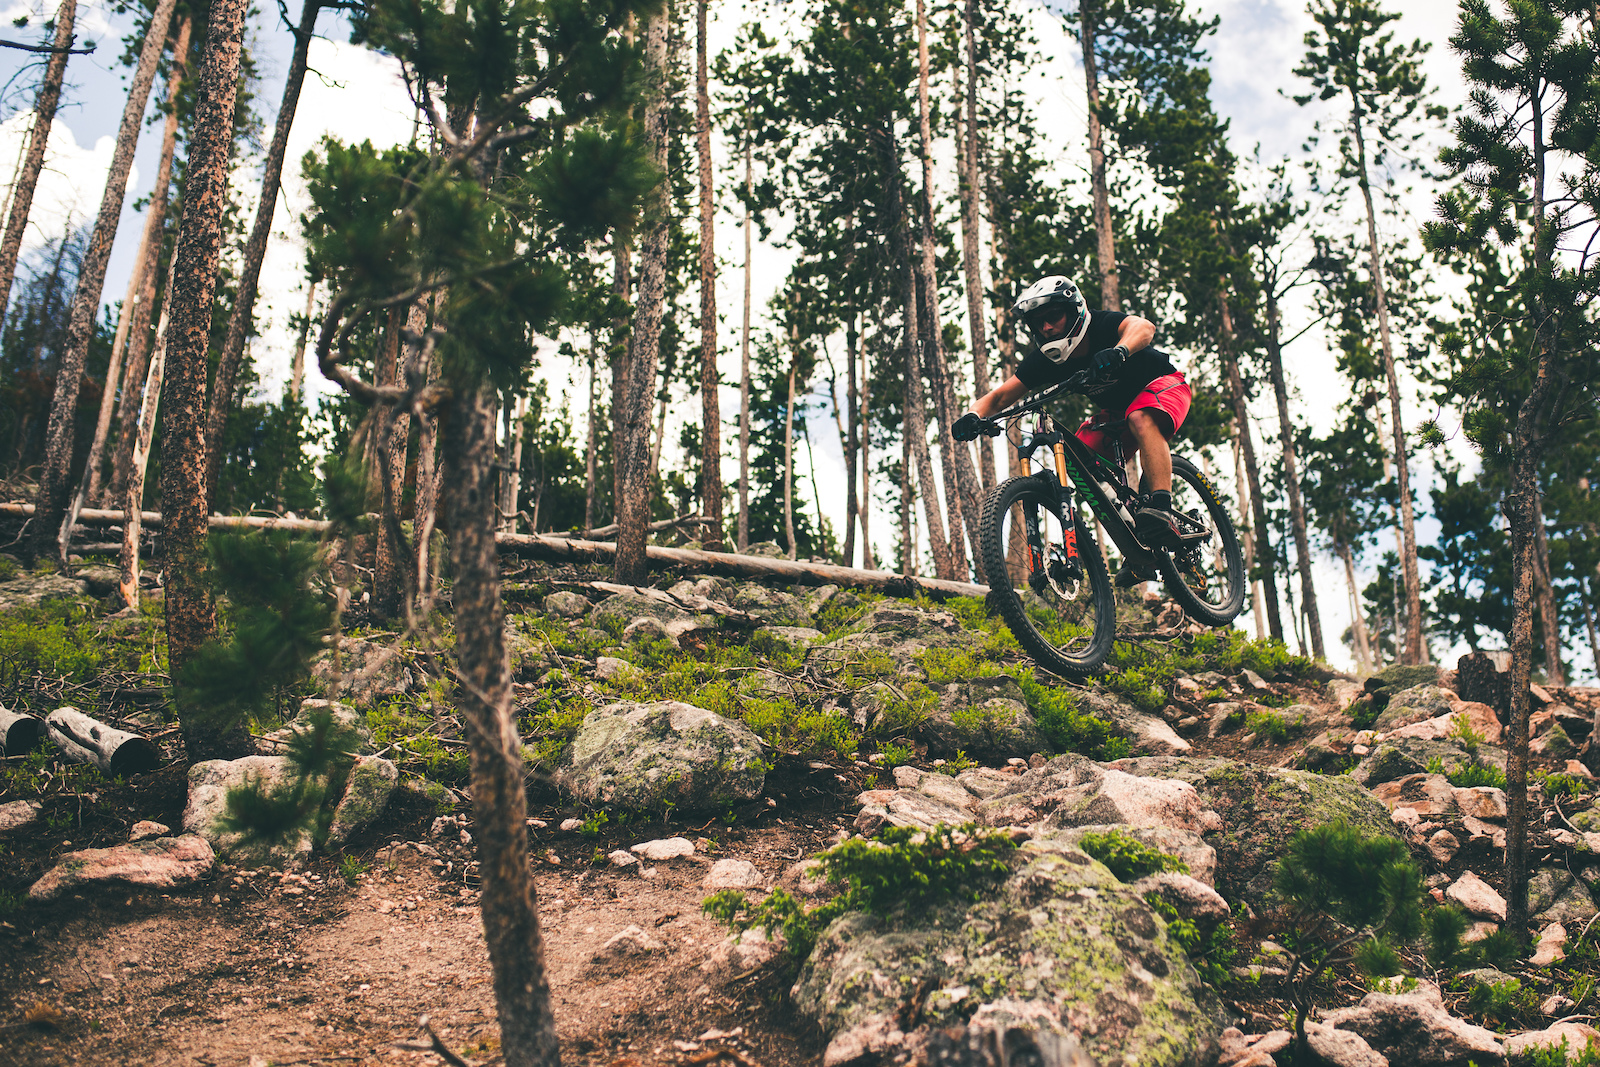 We got a sneak preview of Dirty Dozen Trestle s newest trail. This trail is super fun having a mix of backcountry style rock gardens and machine built berms to keep up your speed.